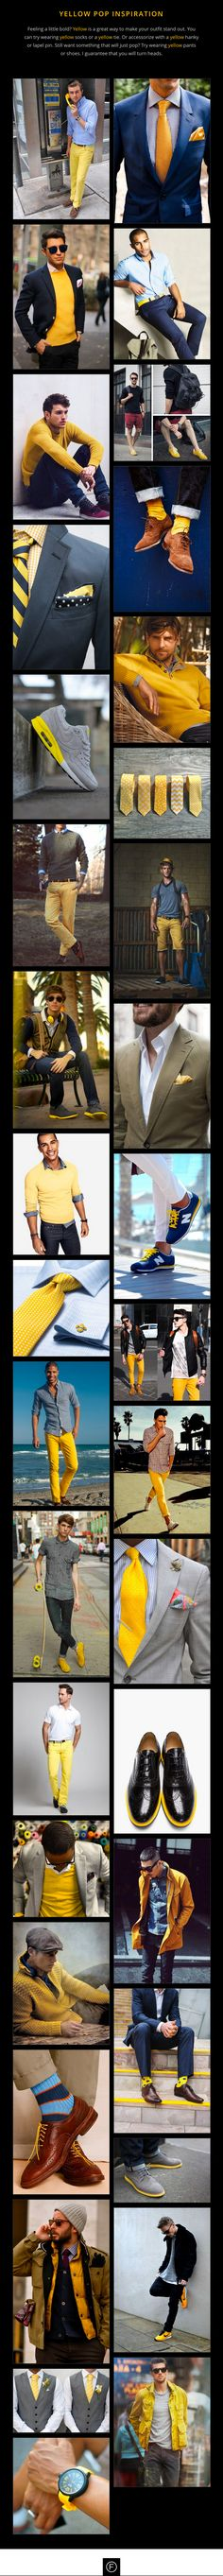 Feeling a little bold? Throwing in a bit of yellow is a great way to make your outfit stand out in the crowd. Be inspired with the yellow pop collection. #mensfashion #yellow